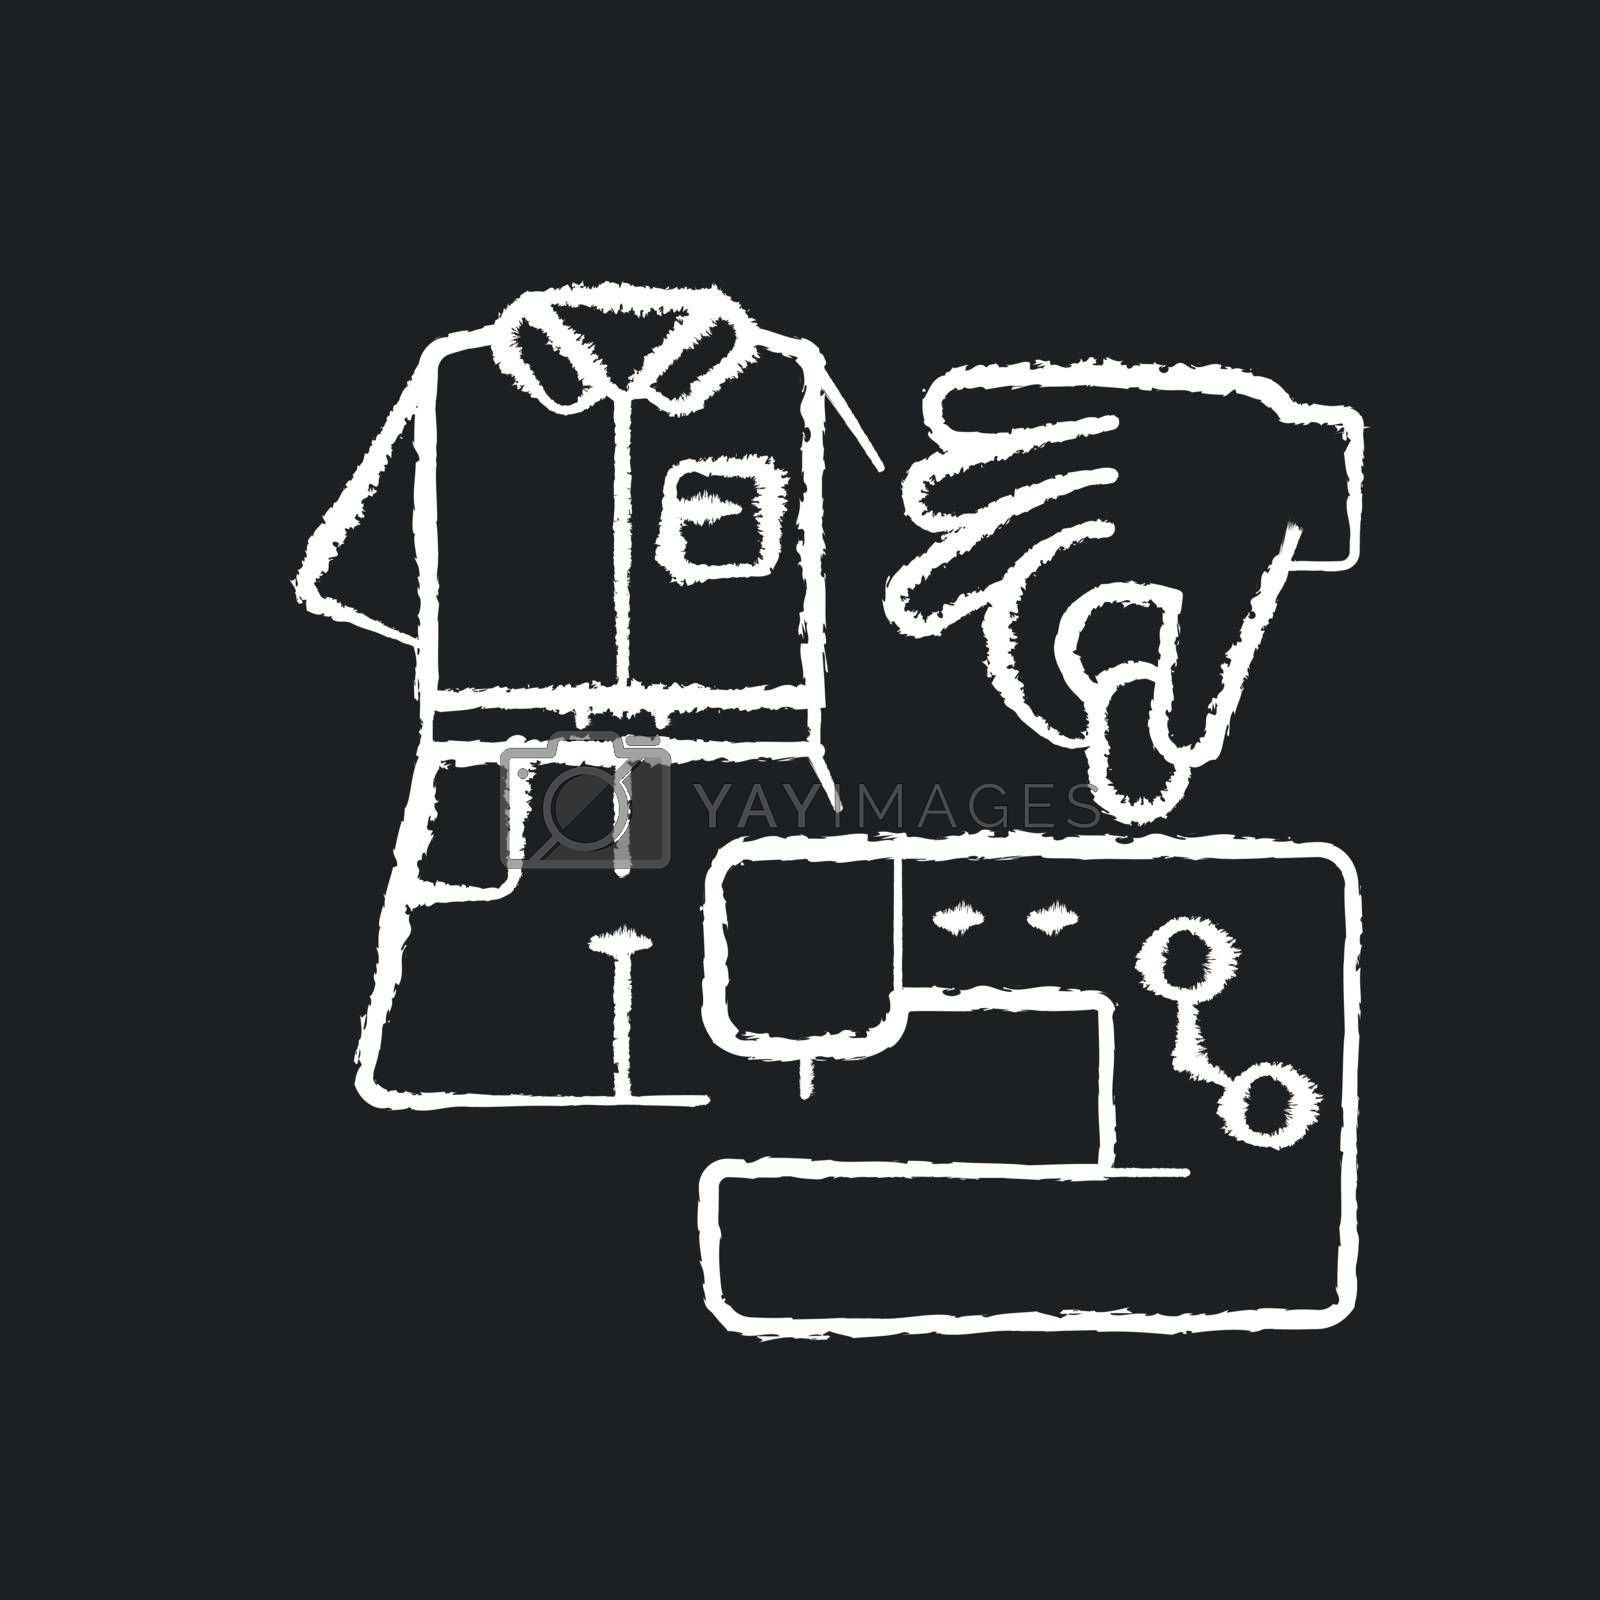 DIY fashion chalk white icon on black background. Handmade outfit. Create clothes with sewing machine. Handicraft textile and cloth. Tailor studio. Isolated vector chalkboard illustration